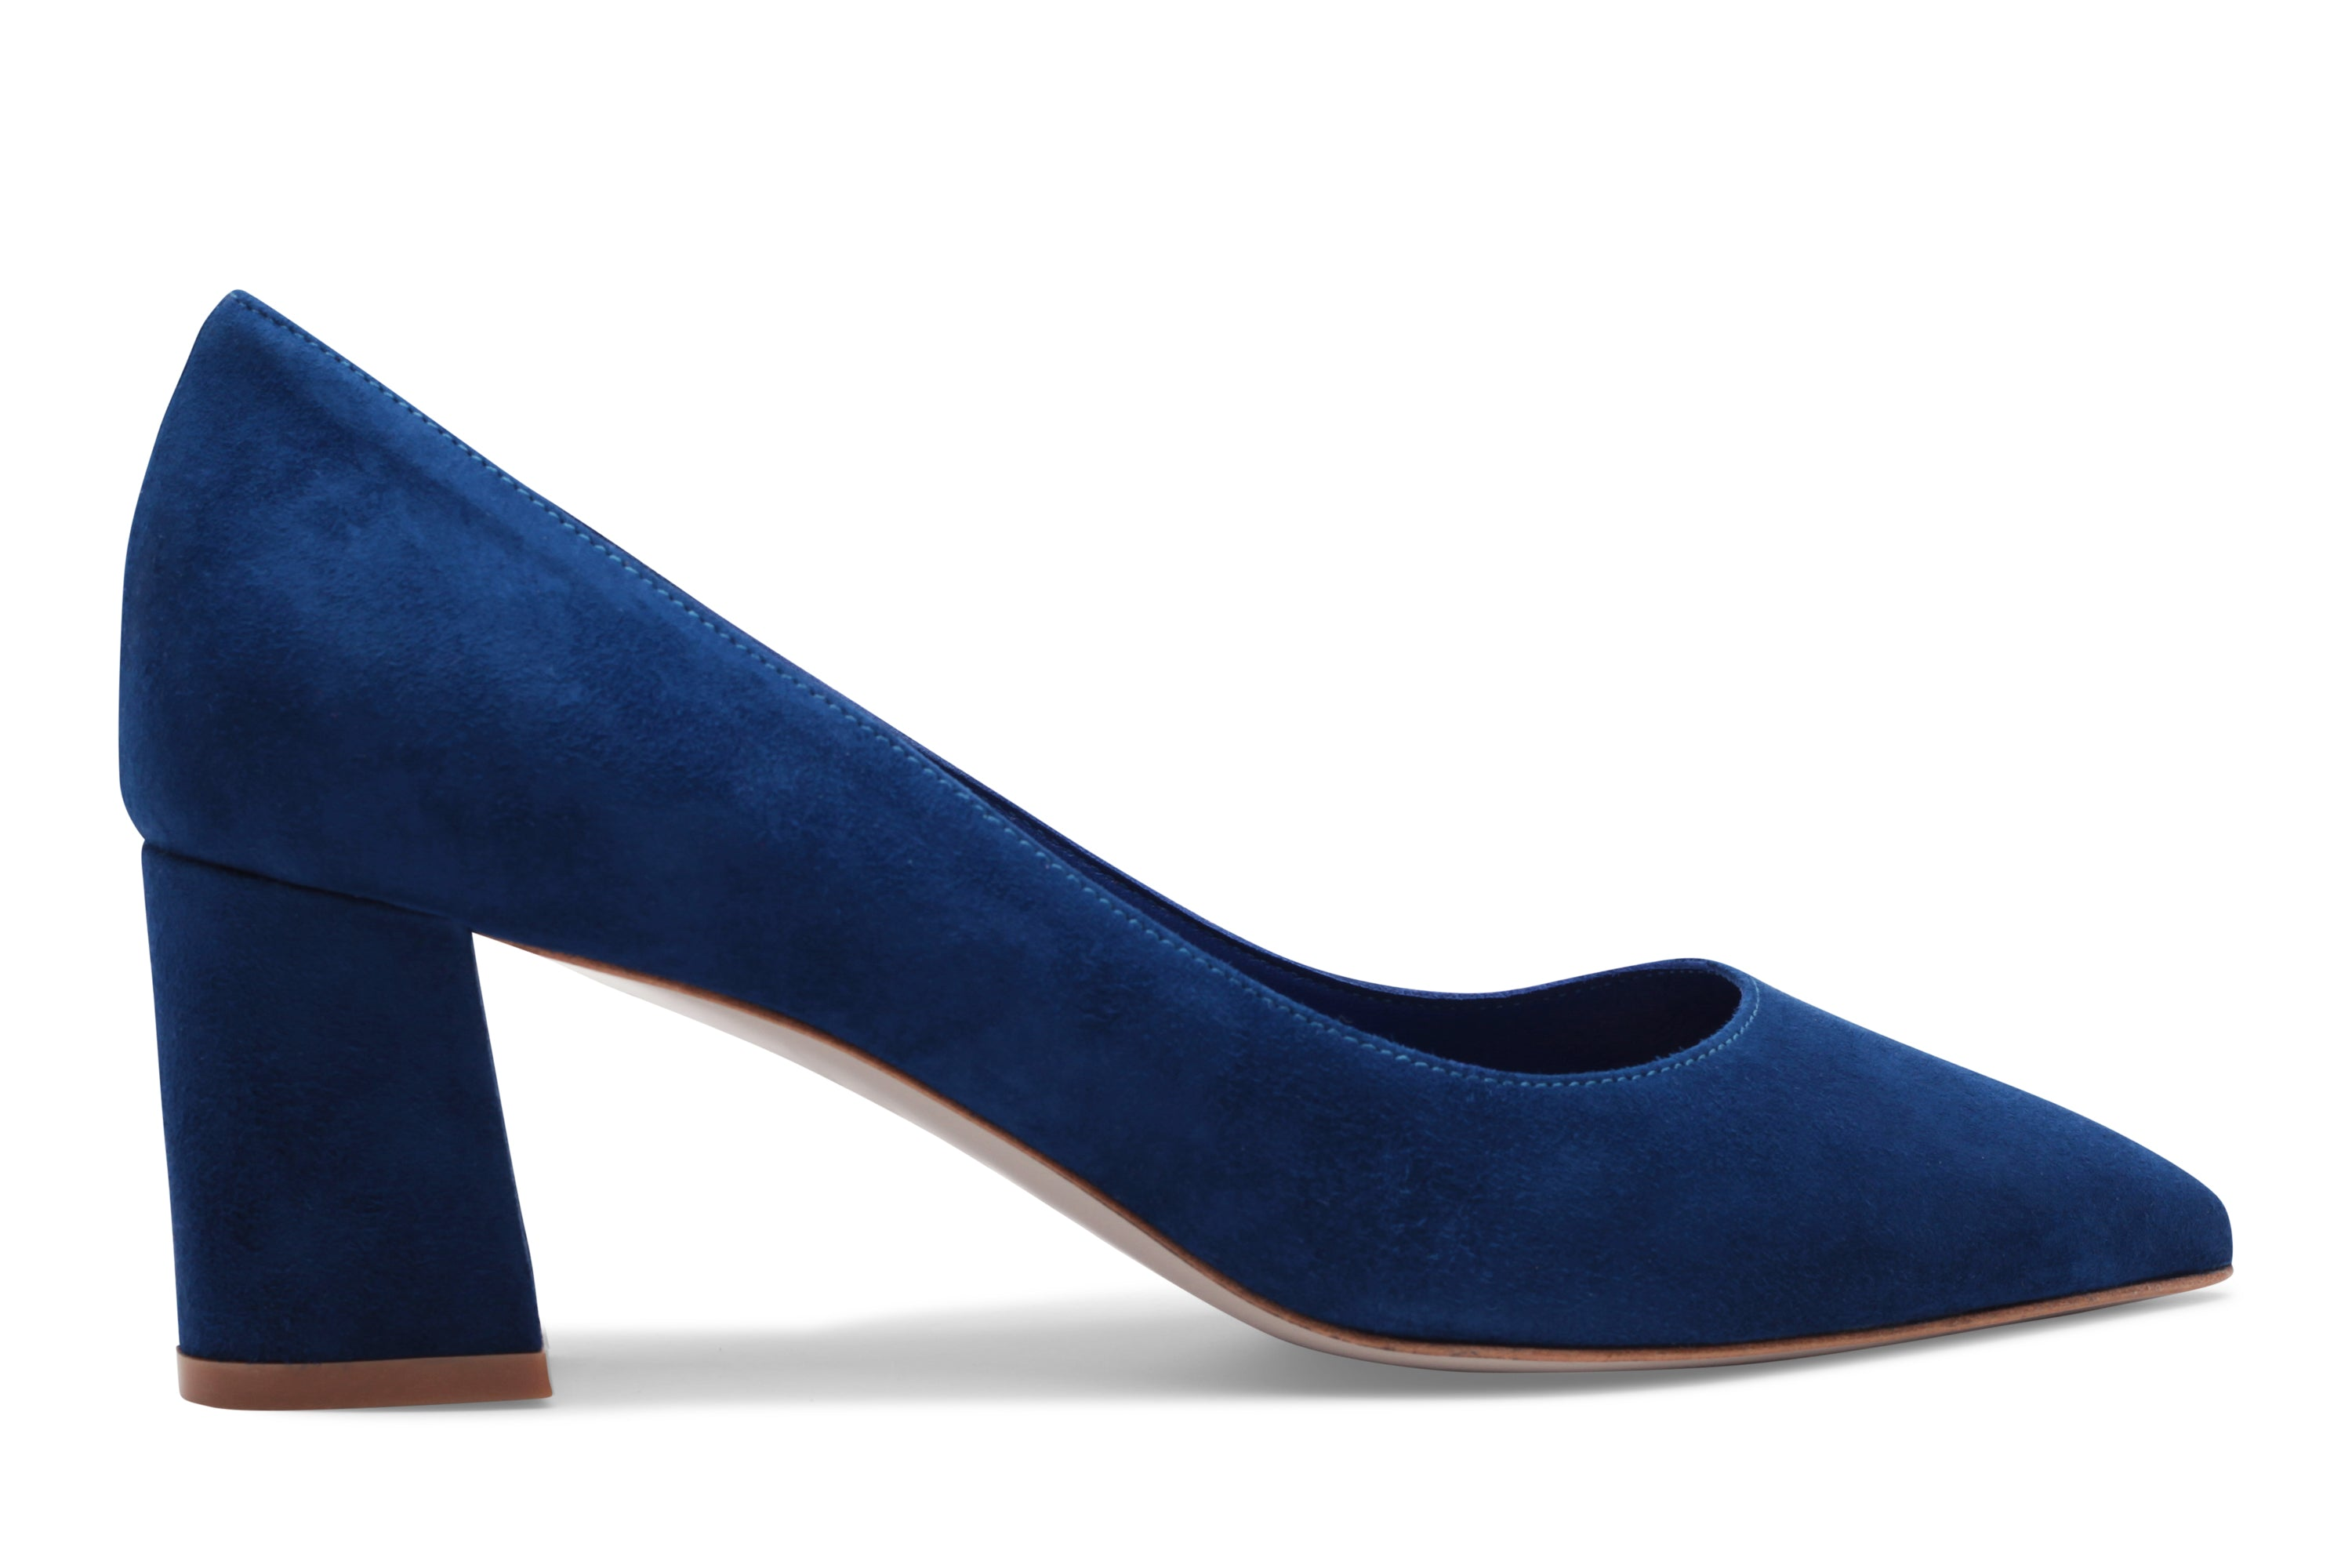 Blue suede block heel